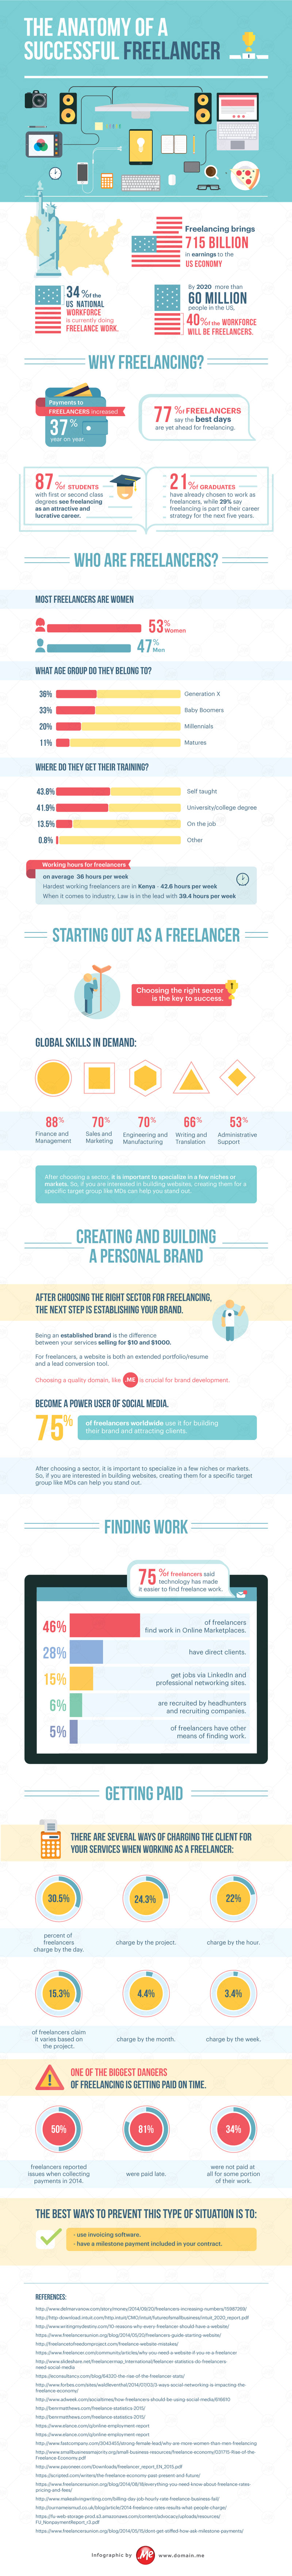 the-anatomy-of-a-successful-freelancer